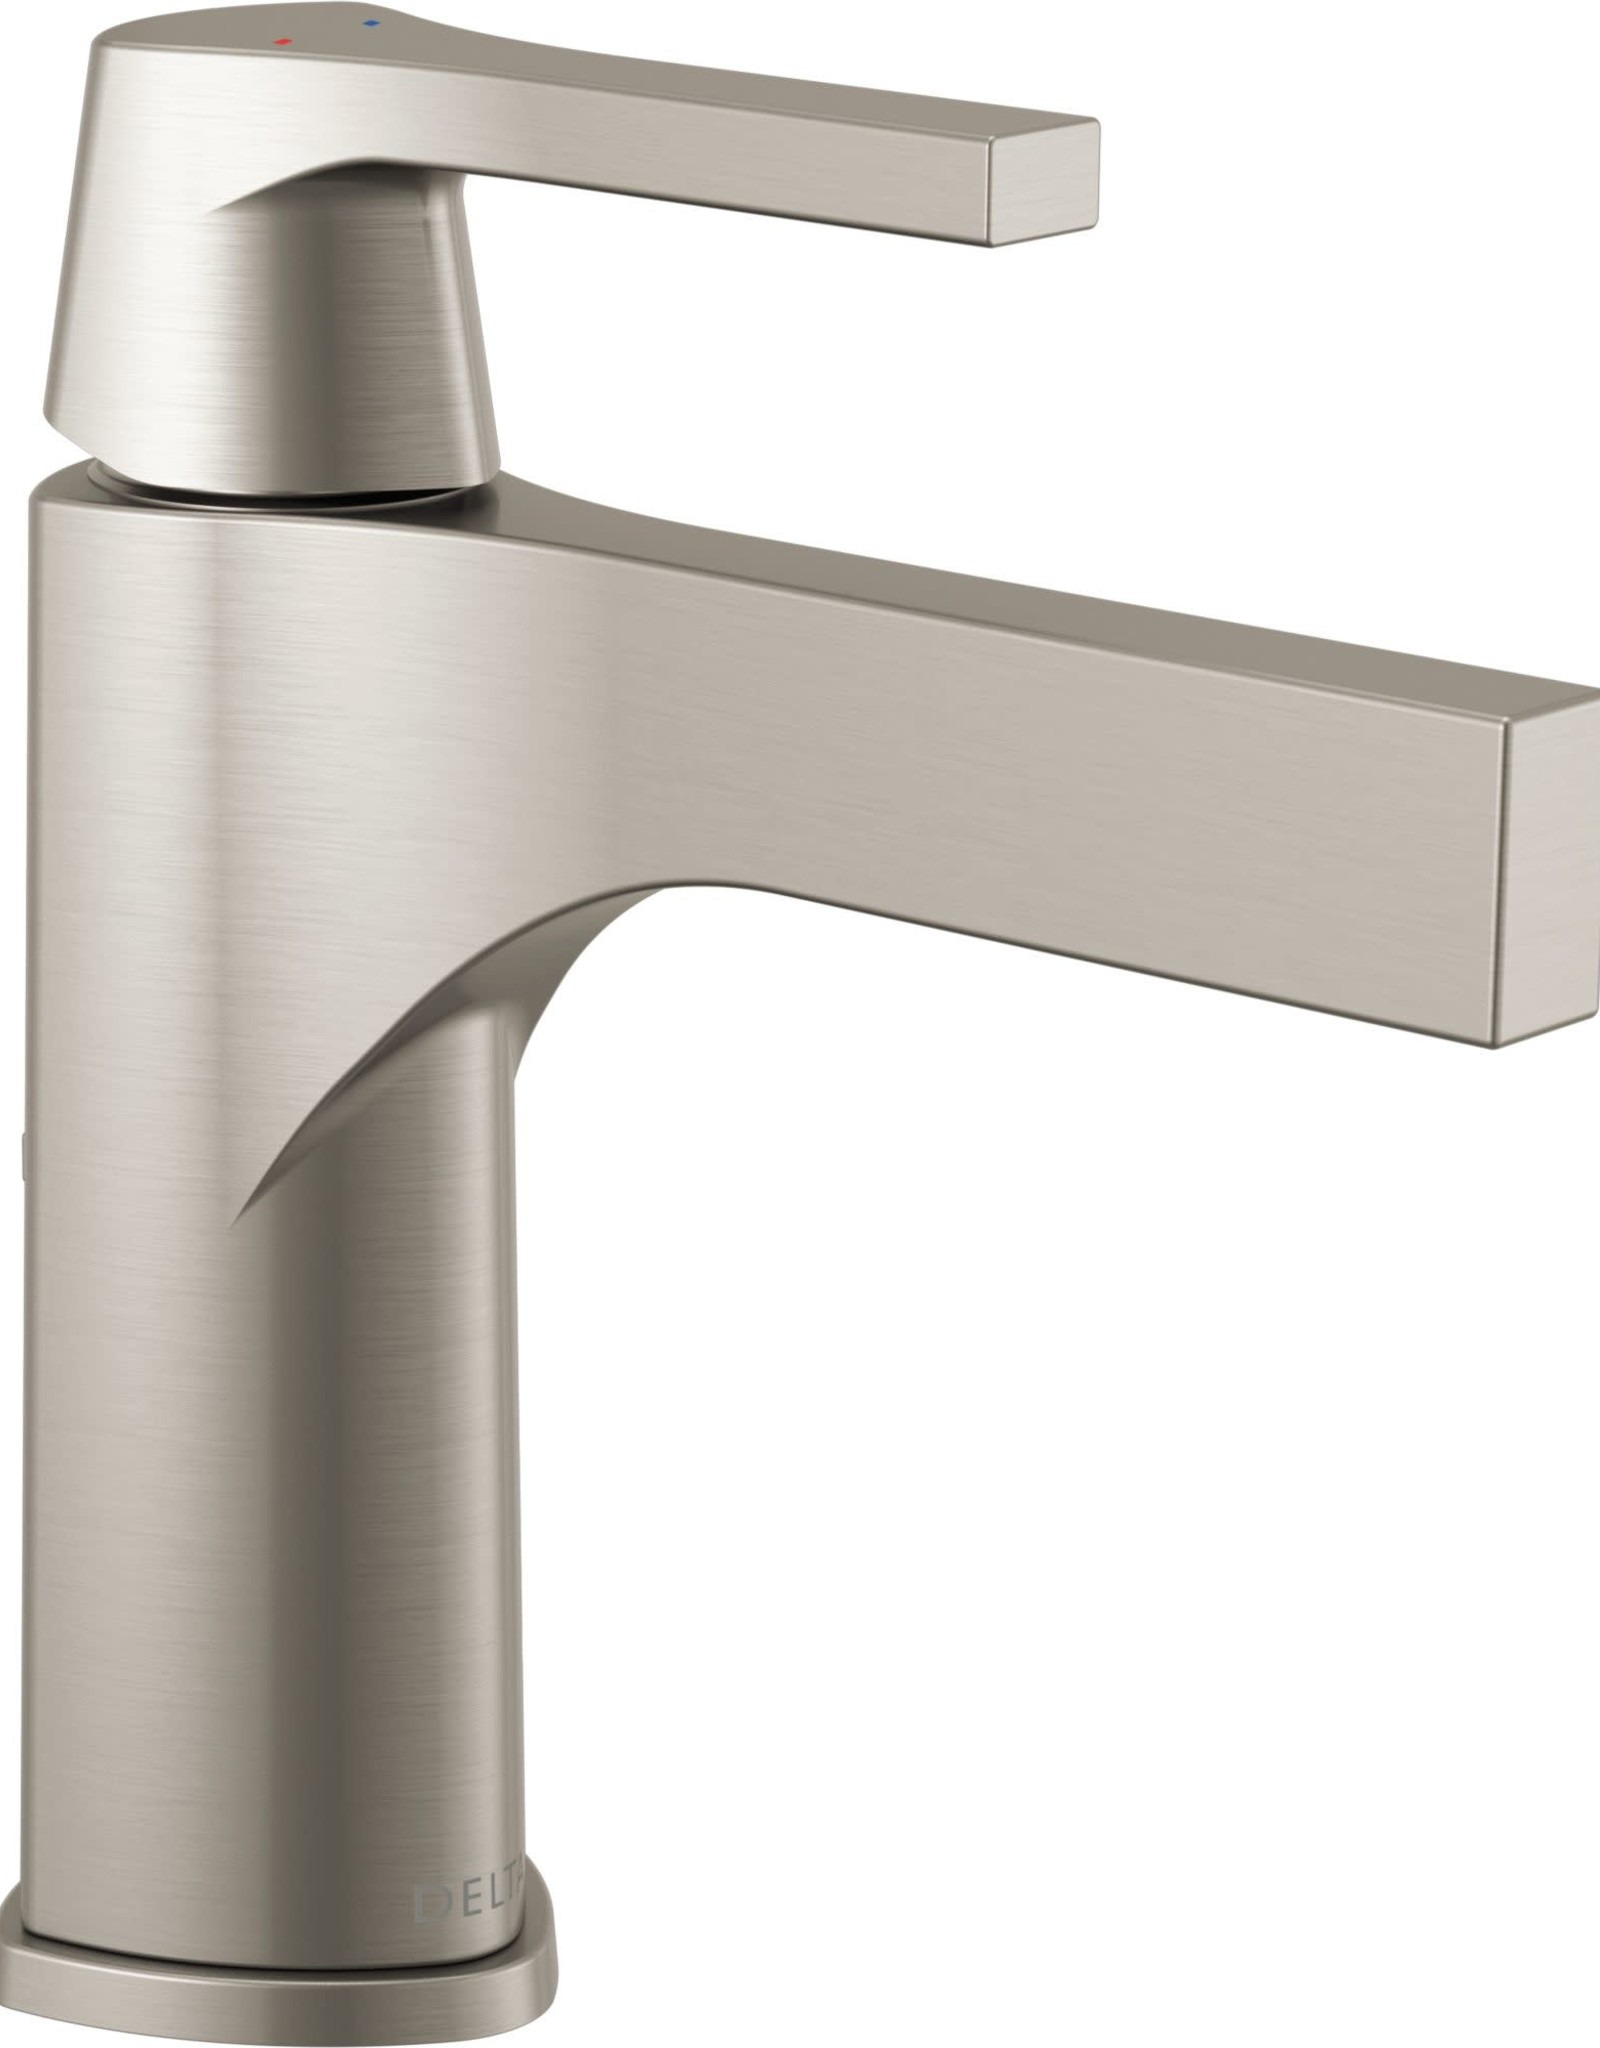 Delta Delta Zura Single Lav Faucet Brilliance Stainless